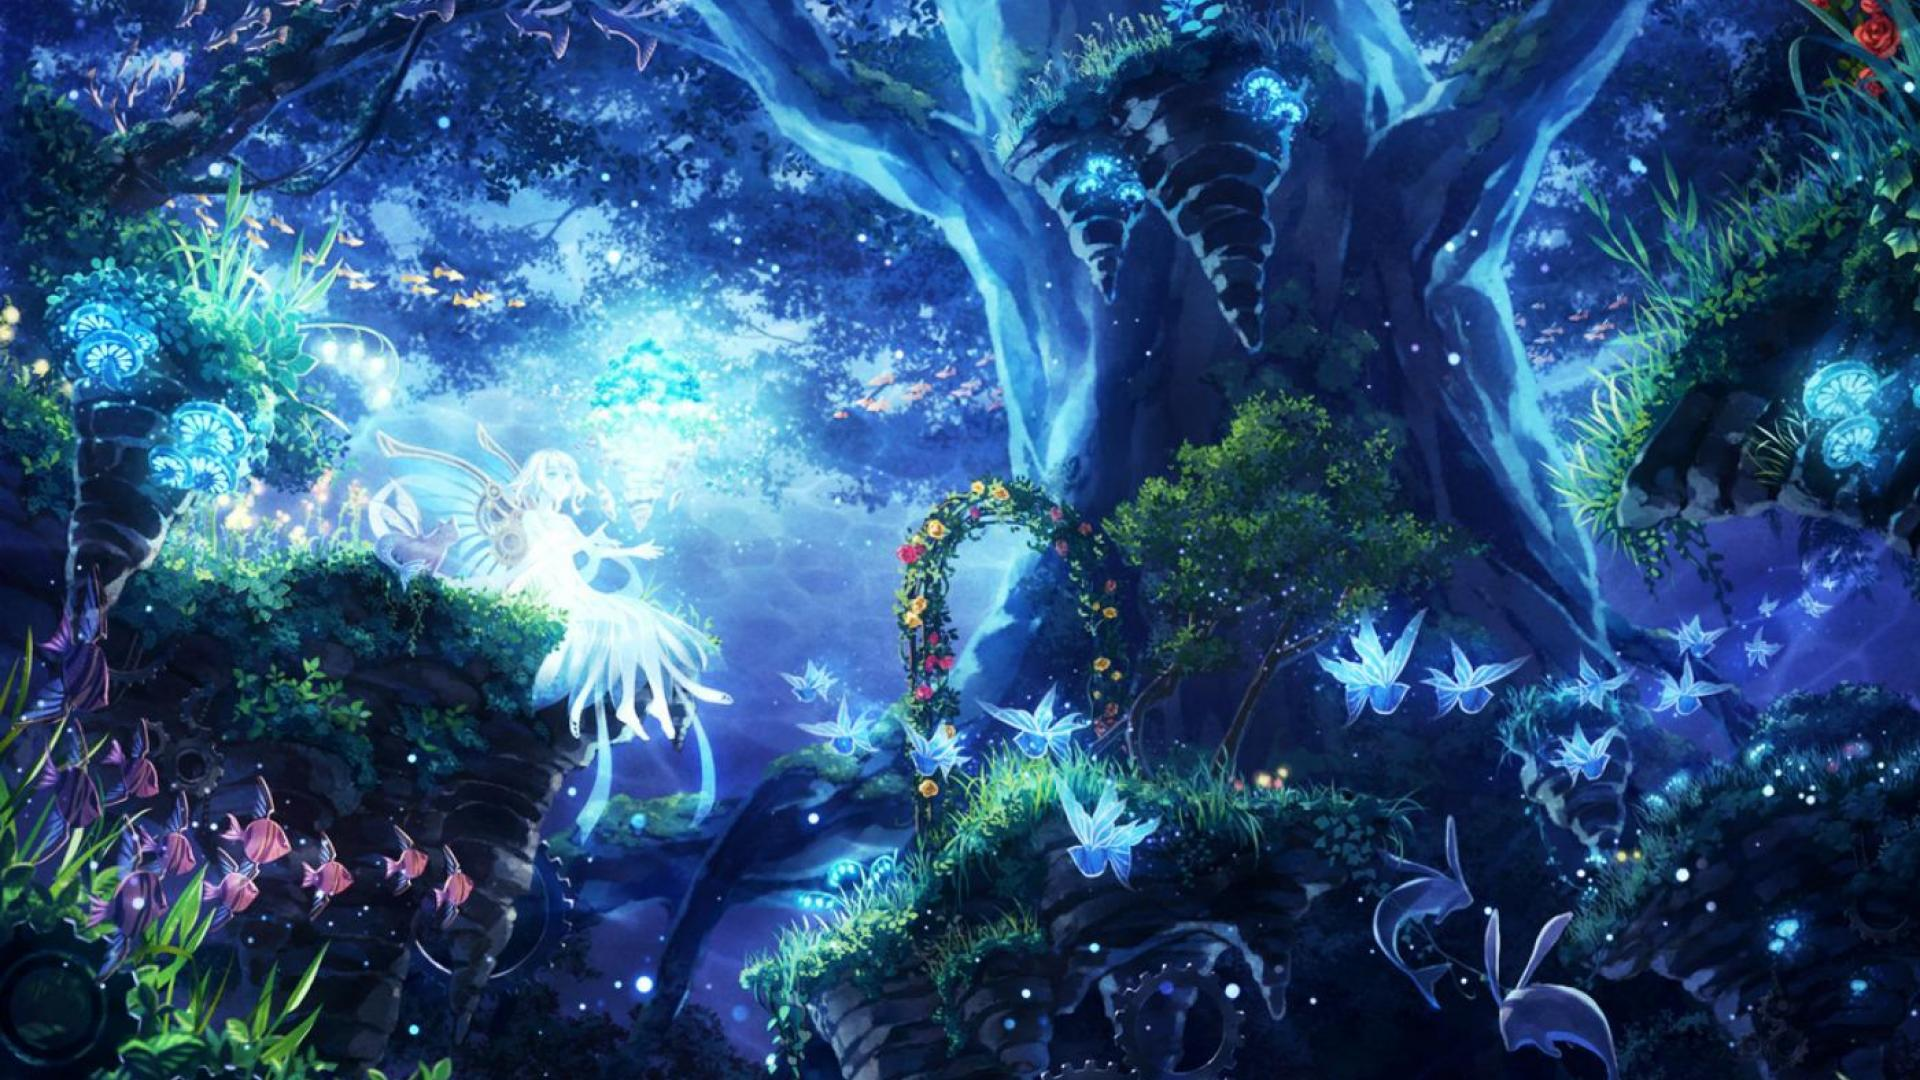 Collection of Fantasy World Wallpaper on HDWallpapers